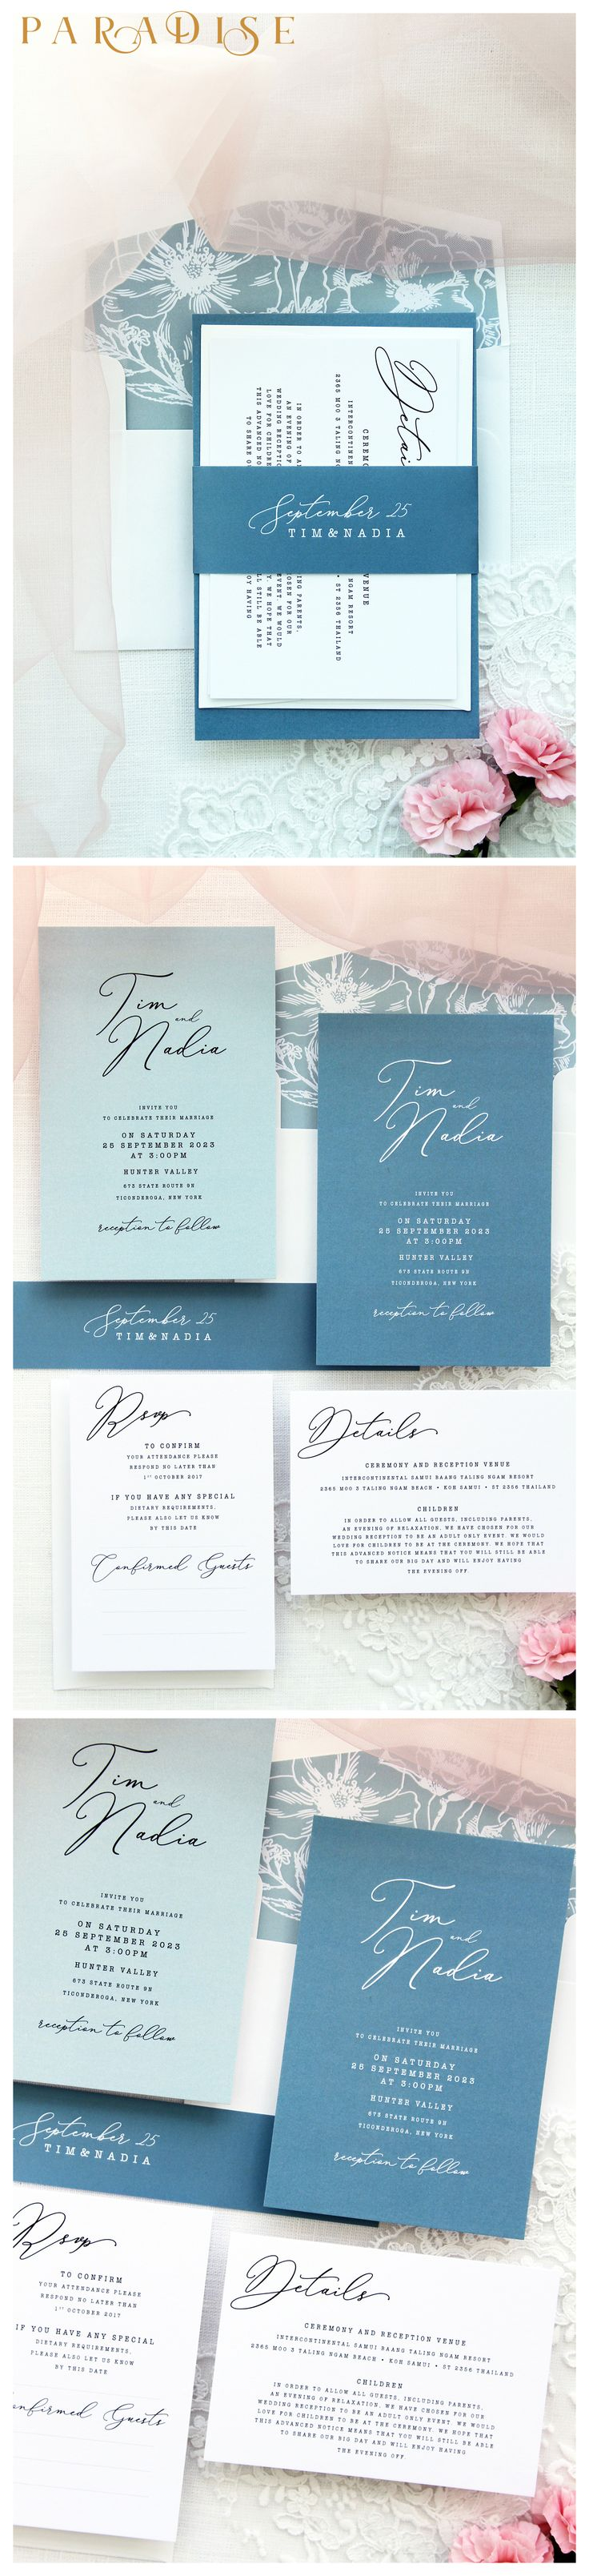 printable samples of wedding invitations%0A Nadia Sky Blue  Turquoise Calligraphy Wedding Invitation Sets  Printable  Invitations or Printed Wedding Invitations